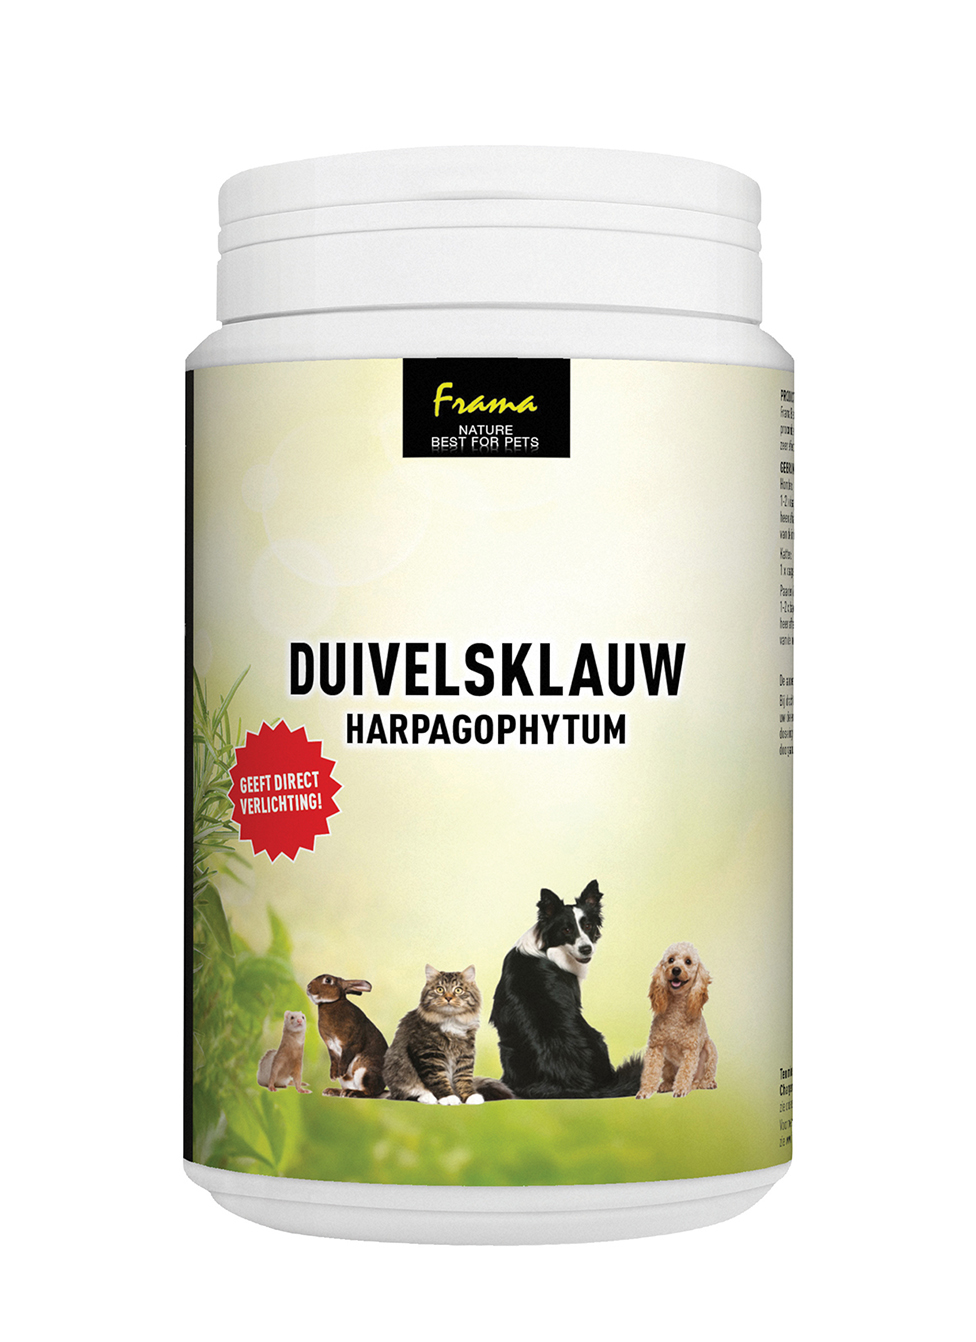 FRAMA DUIVELSKLAUW FIJN - NATURE BEST FOR PETS (150 GR)